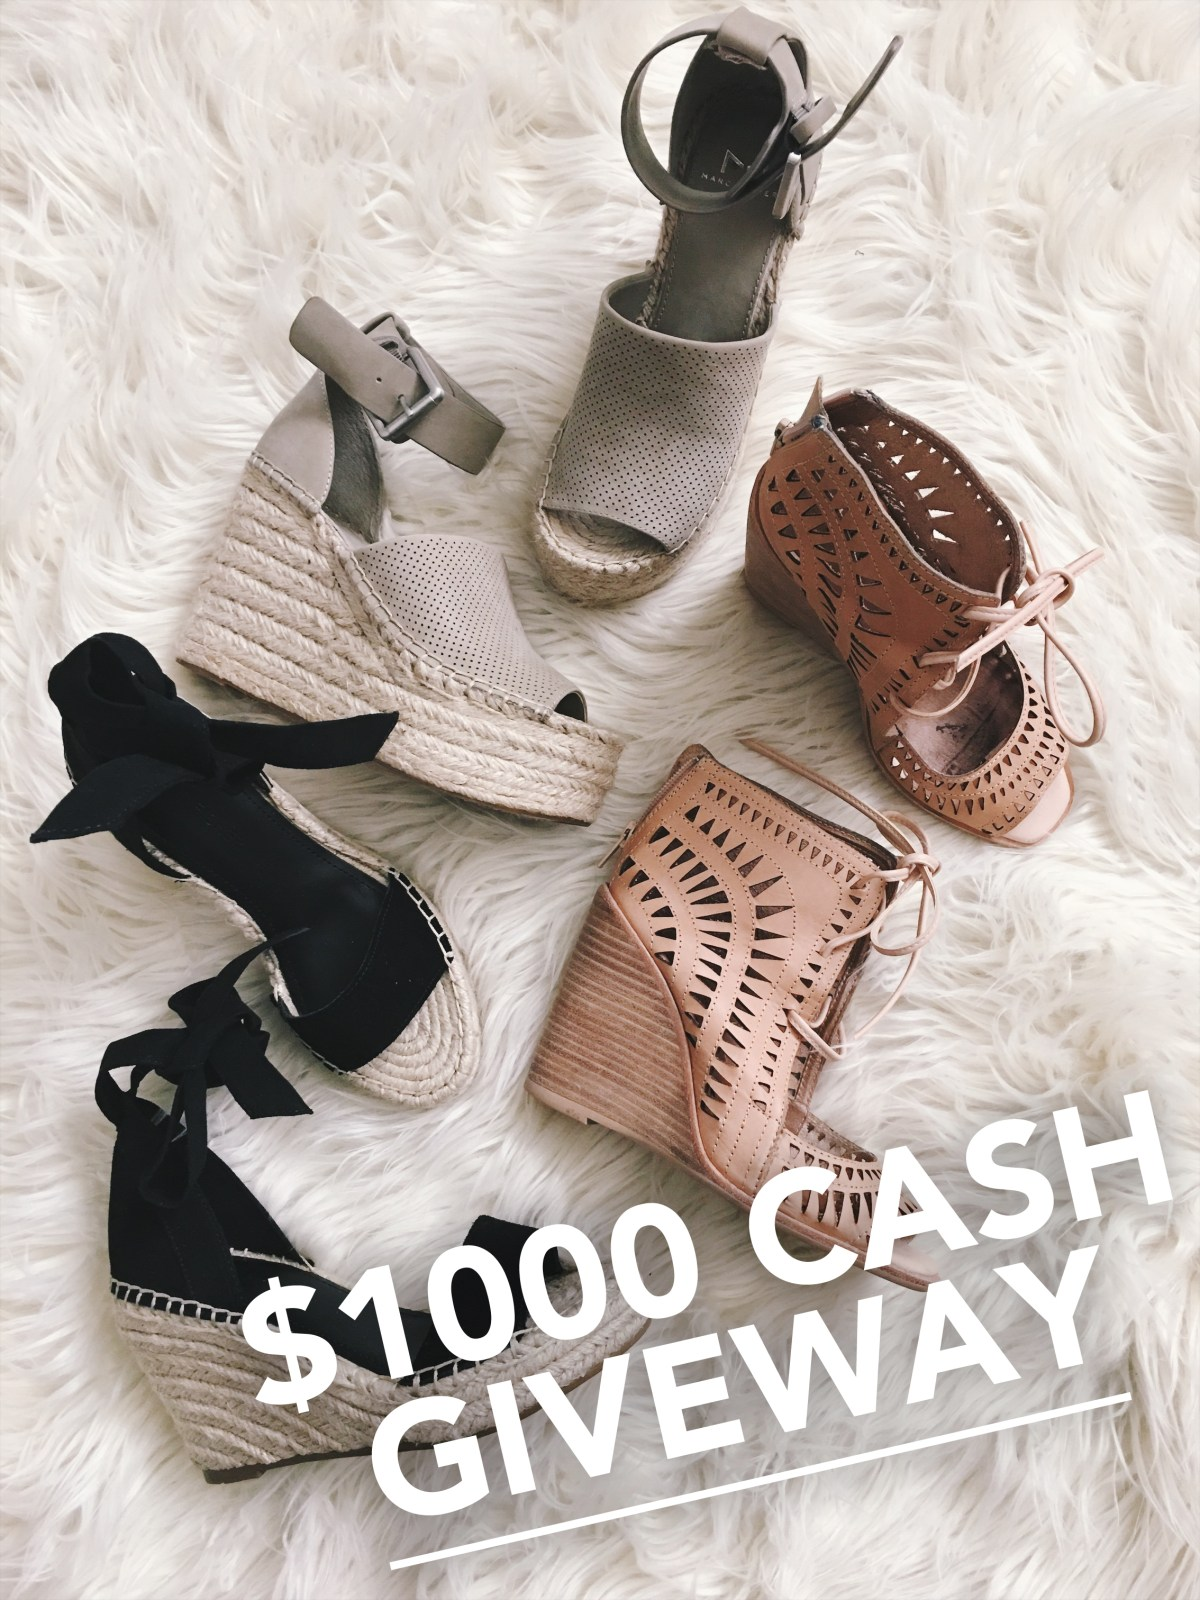 Win $1000 in Cash Giveaway